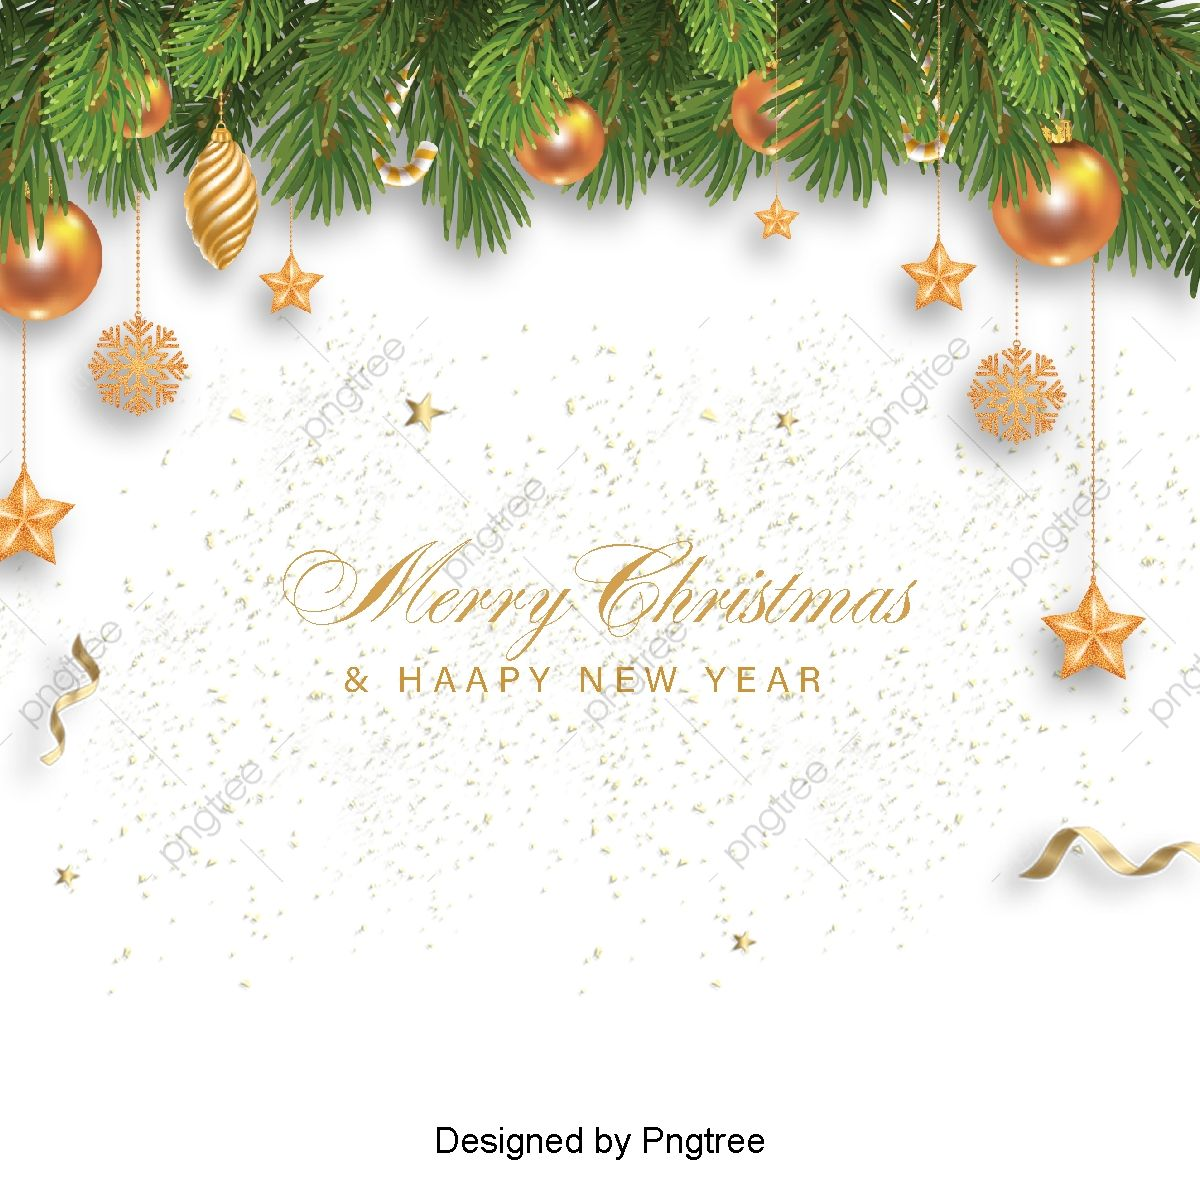 Download This The Simple Color Background And White Christmas Card Sns Background Background Chris White Christmas Card Christmas Cards Christmas Cards Free